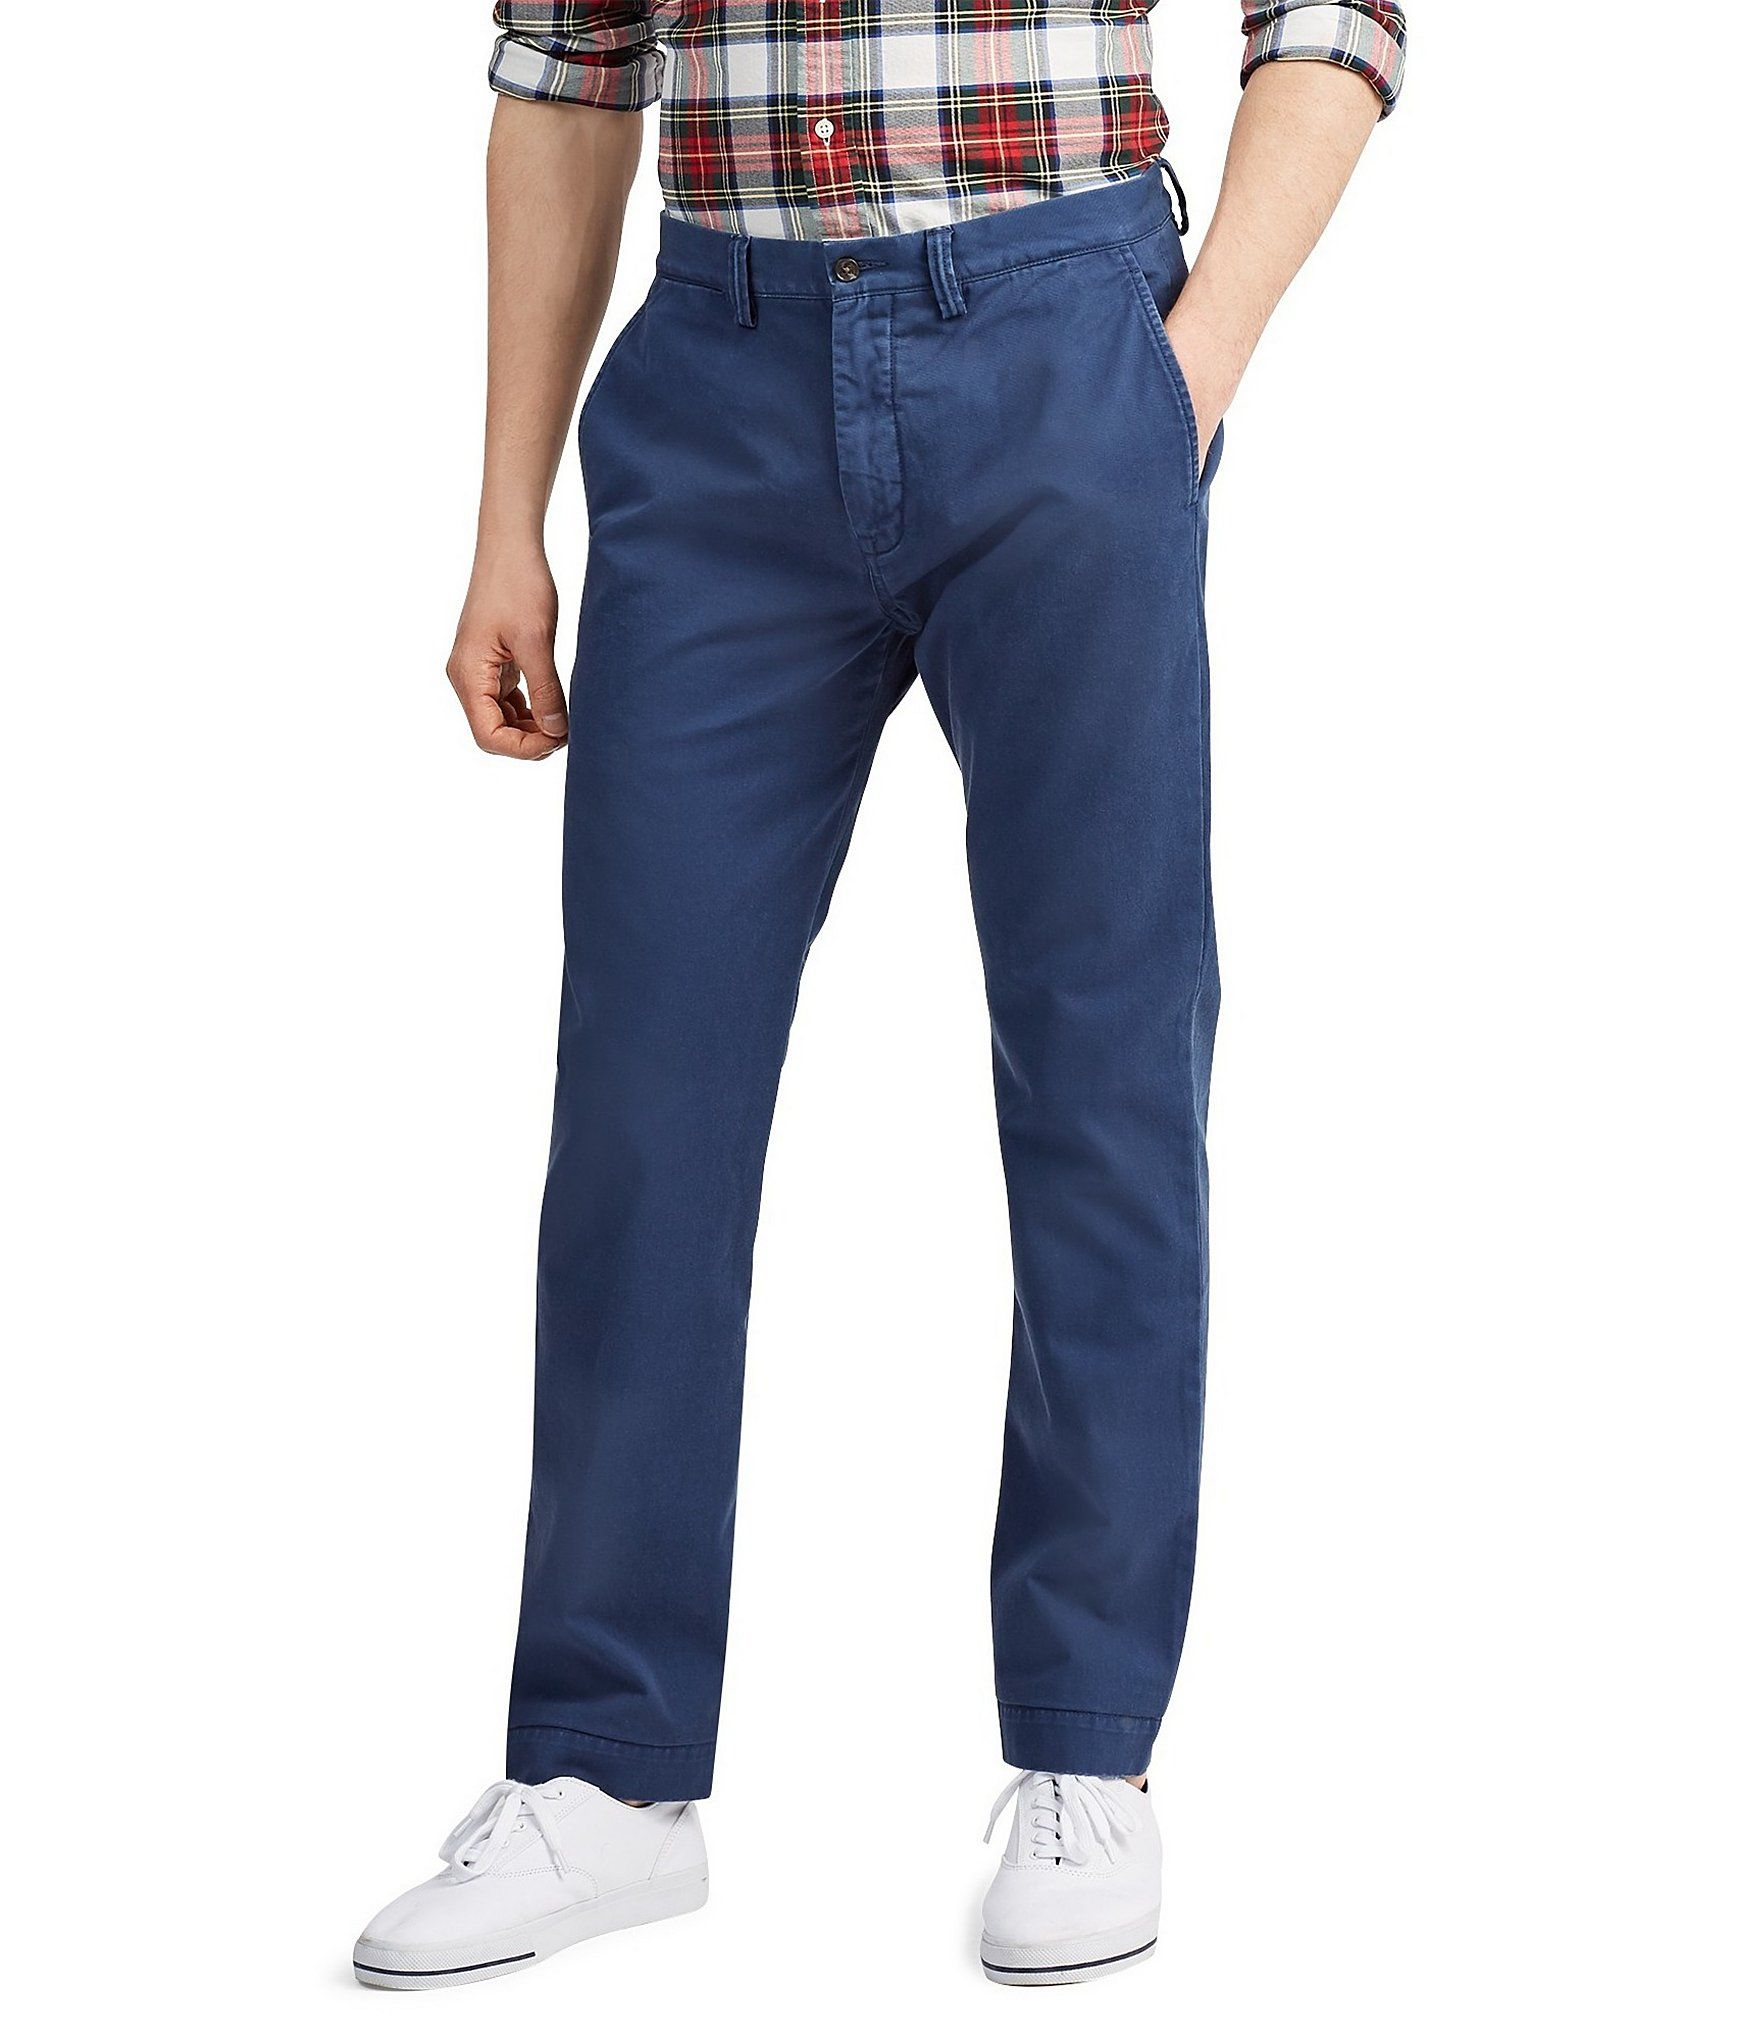 Polo Ralph Lauren Classic Fit Flat Front Bedford Chino